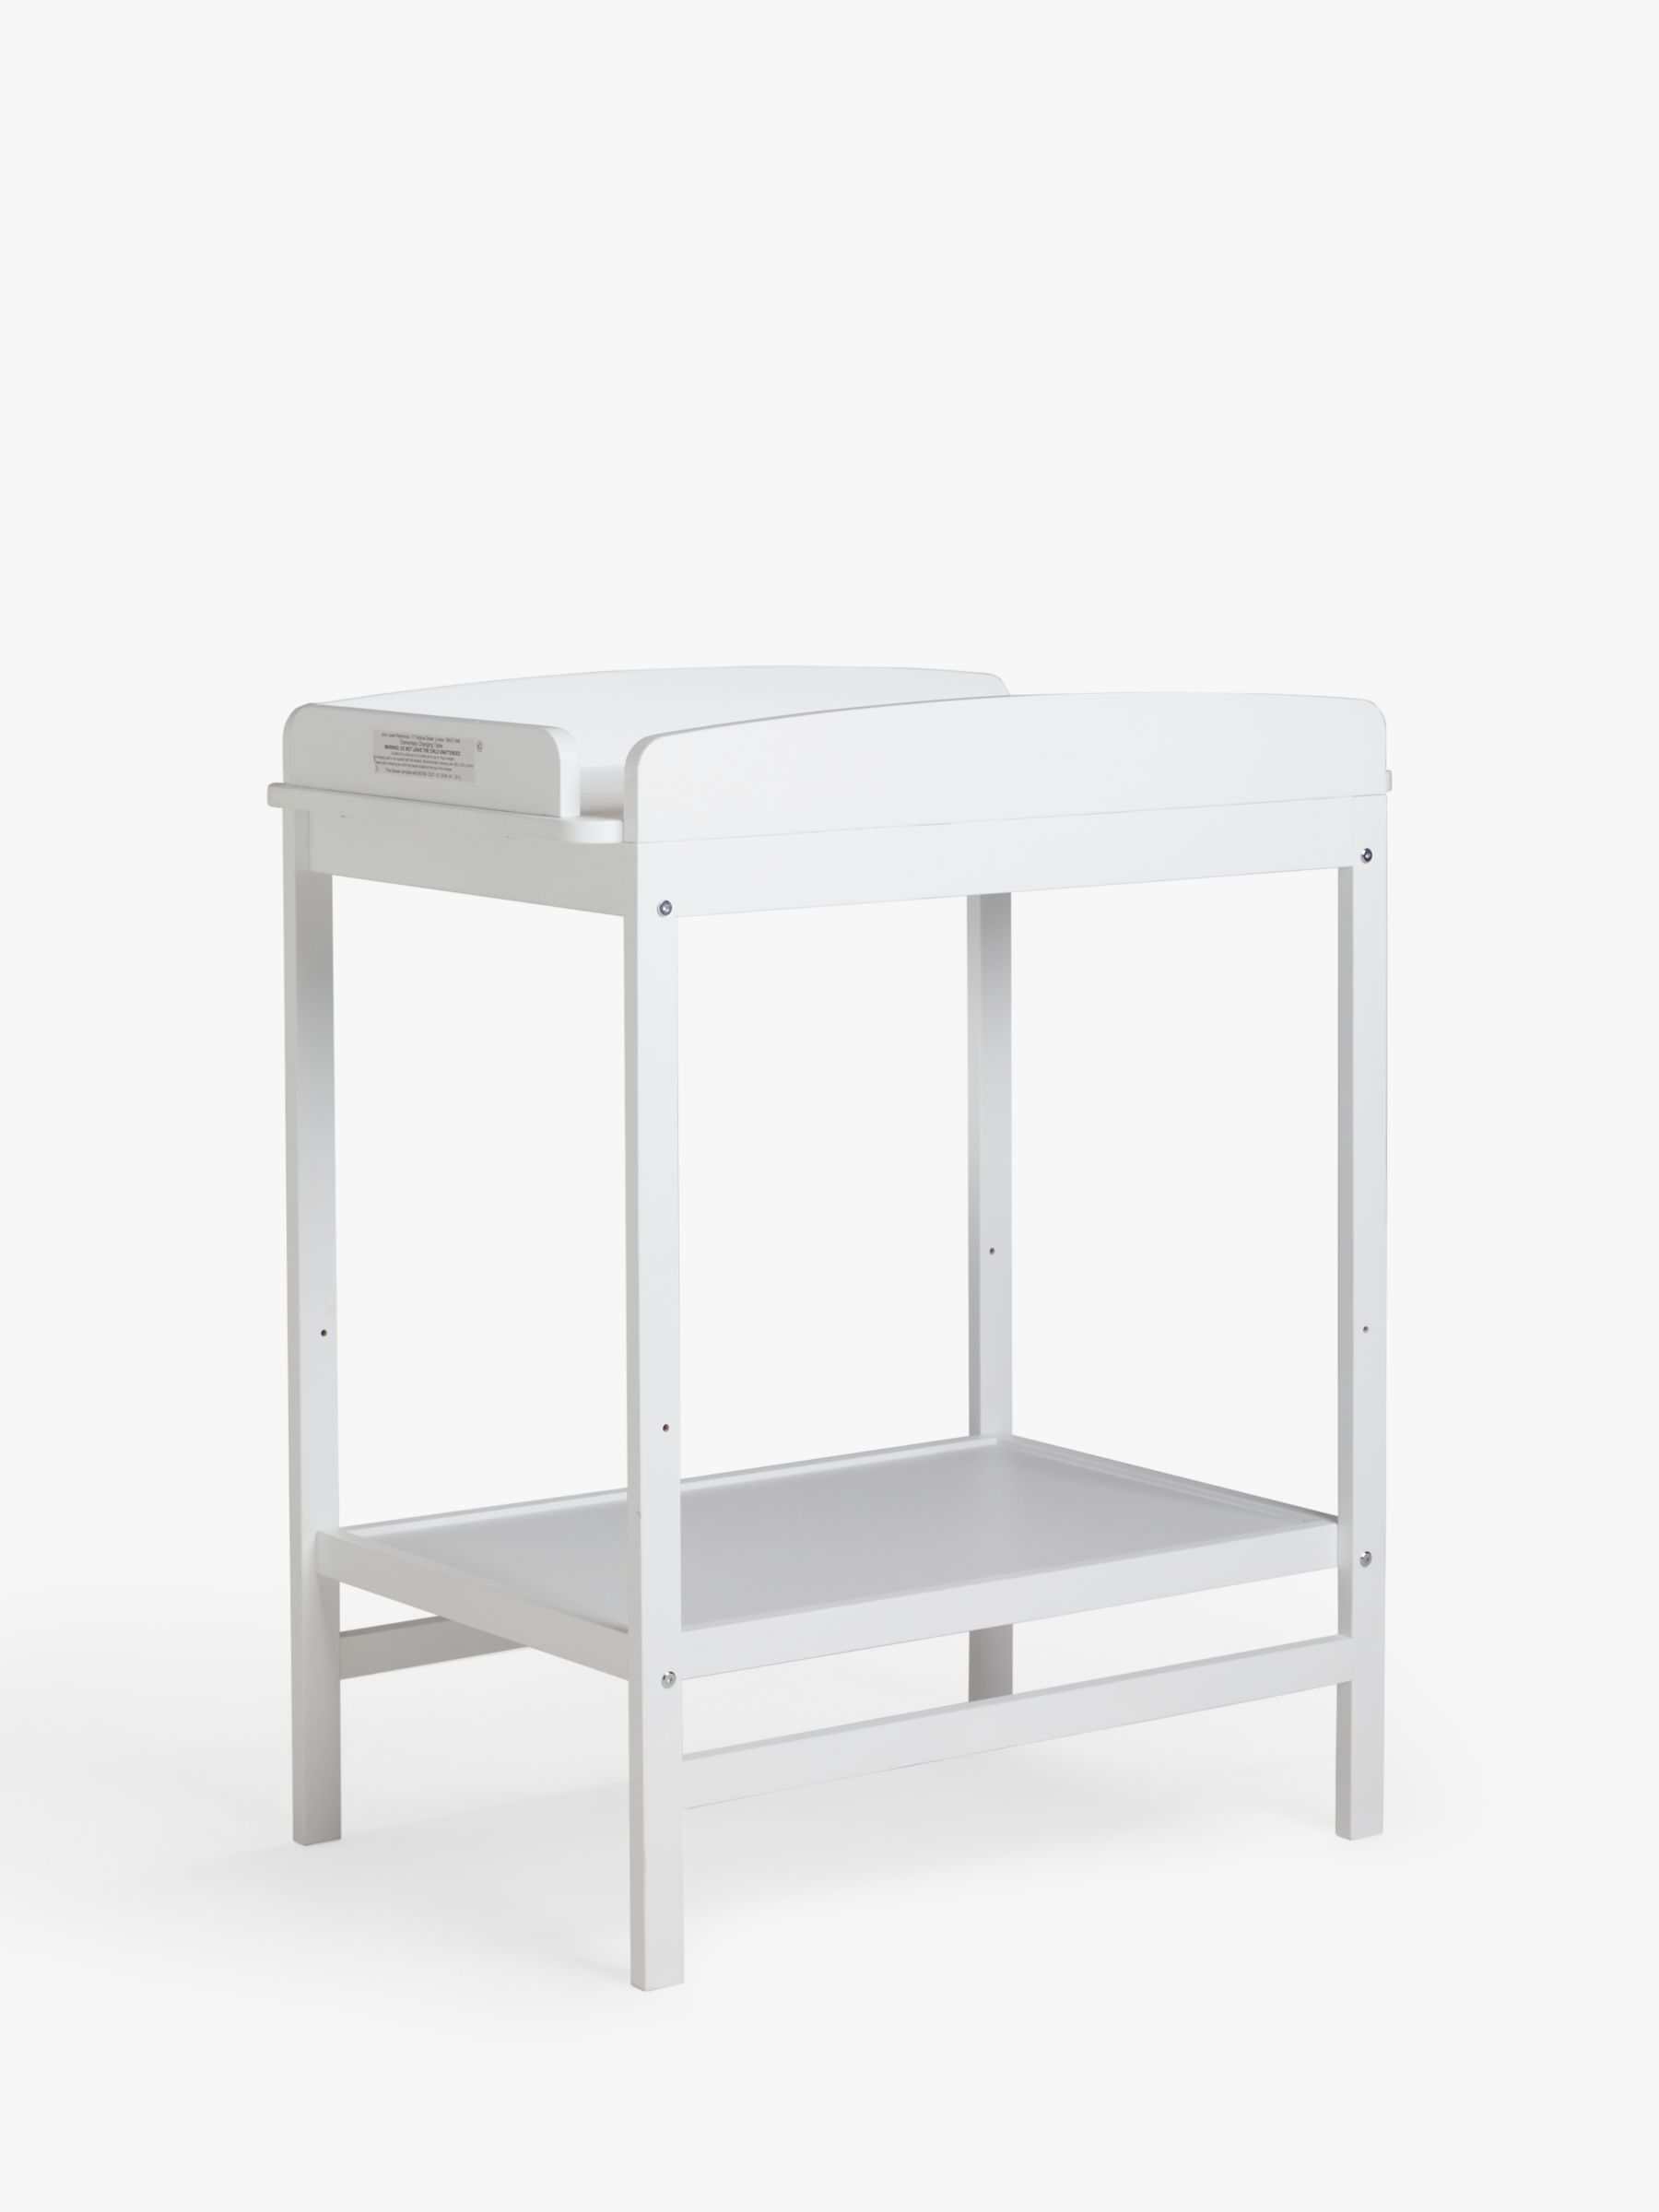 ANYDAY John Lewis & Partners Elementary Changing Table, White